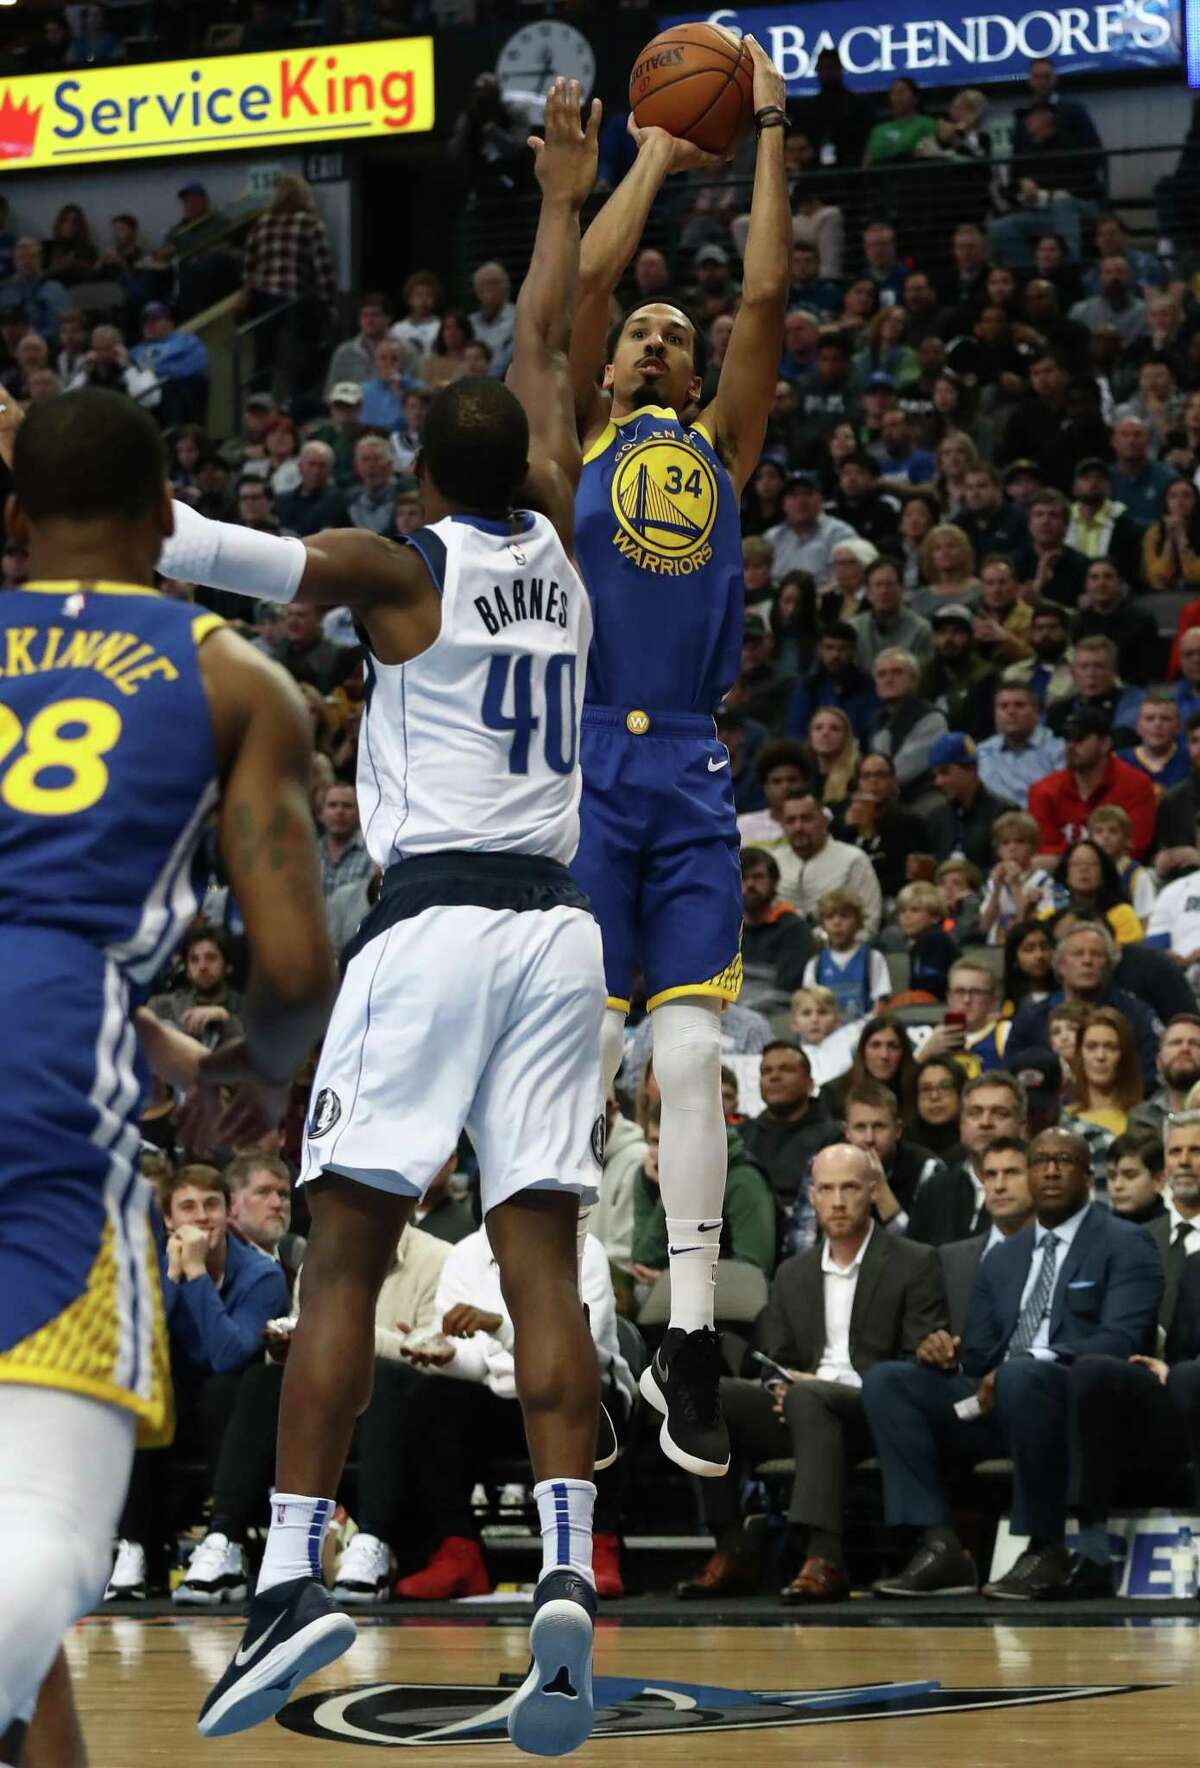 DALLAS, TEXAS - JANUARY 13: Shaun Livingston #34 of the Golden State Warriors takes a shot against the Dallas Mavericks at American Airlines Center on January 13, 2019 in Dallas, Texas. NOTE TO USER: User expressly acknowledges and agrees that, by downloading and or using this photograph, User is consenting to the terms and conditions of the Getty Images License Agreement. (Photo by Ronald Martinez/Getty Images)